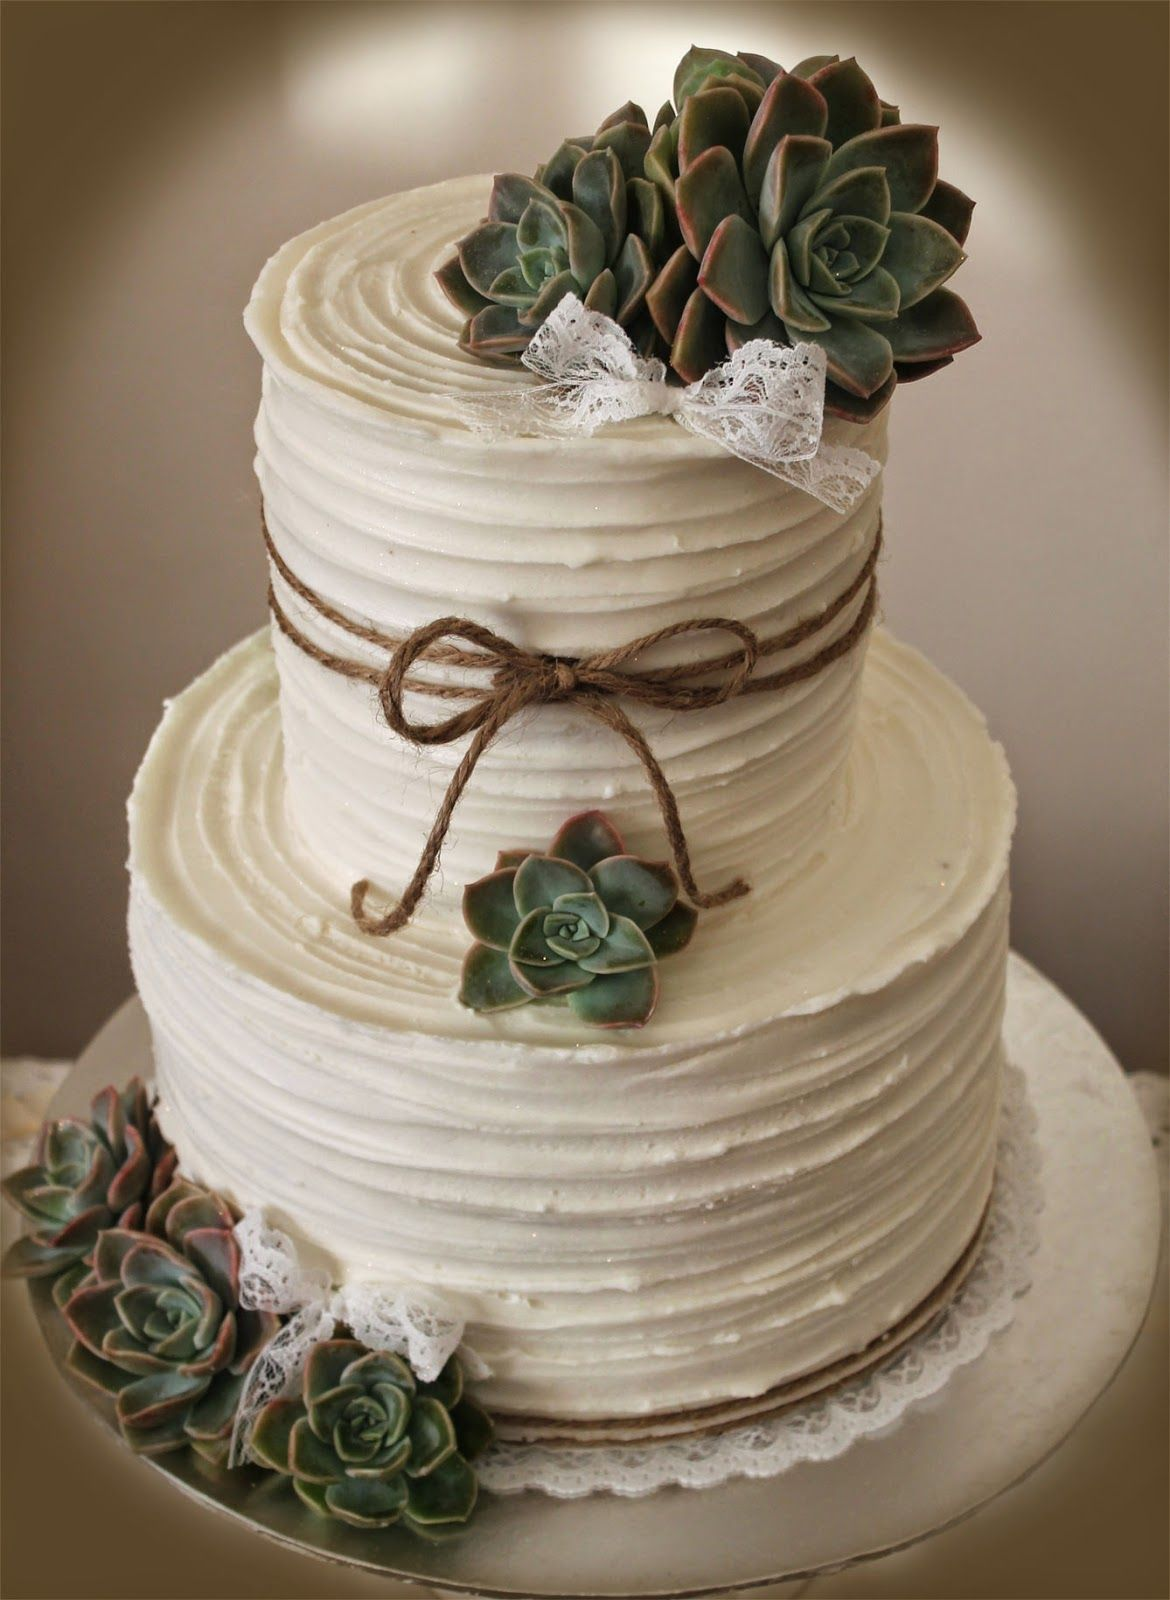 Delana S Cakes Rustic Wedding Cake With Succulents Succulent Wedding Cakes Wedding Cake Rustic Succulent Wedding